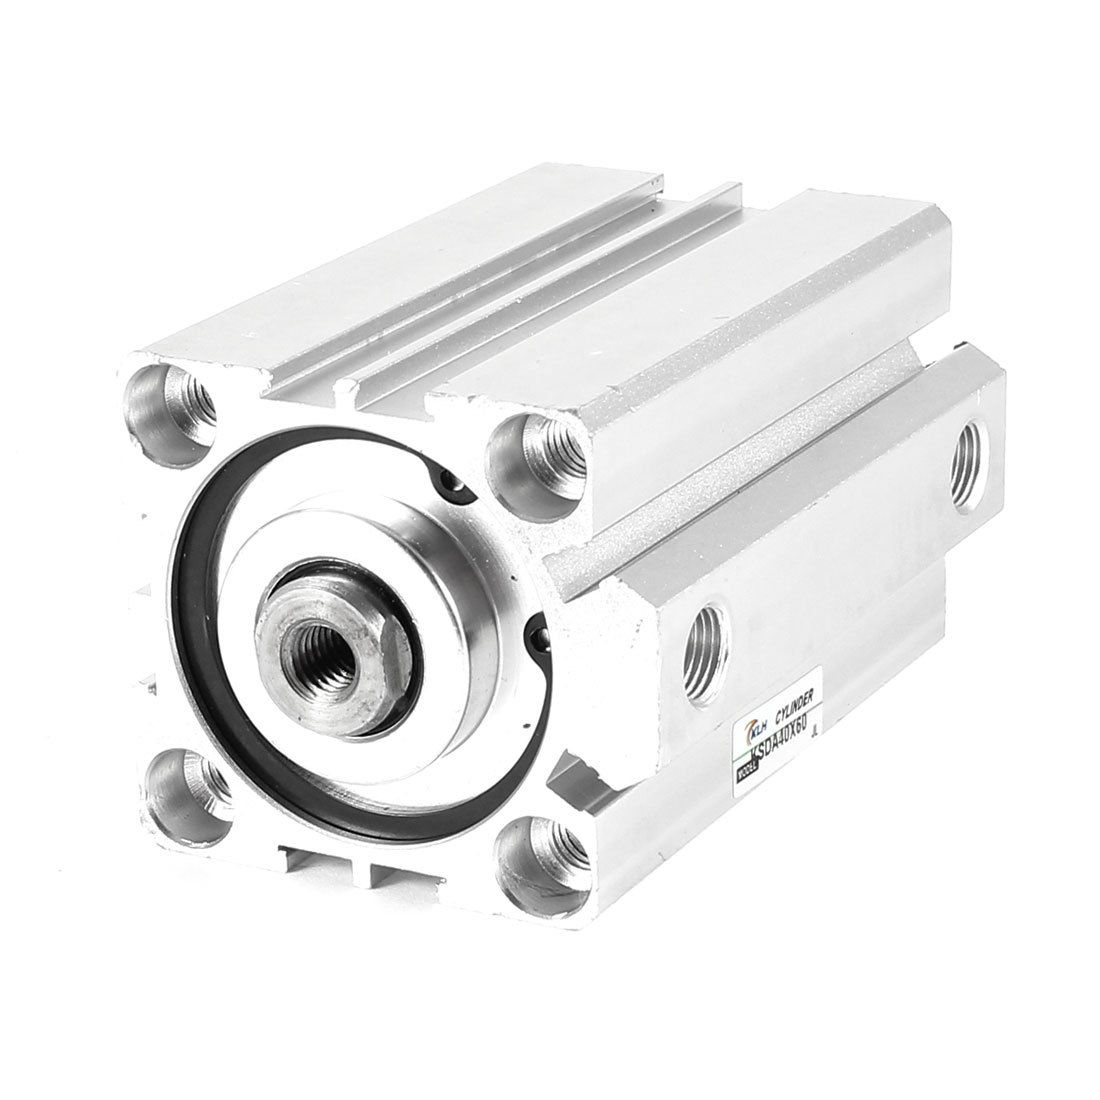 1 Pcs 63mm Bore 20mm Stroke Stainless steel Pneumatic Air Cylinder SDA63-20 hot sale humidifier aromatherapy essential oil 100 240v 100ml water capacity 20 30 square meters ultrasonic 12w 13 13 9 5cm